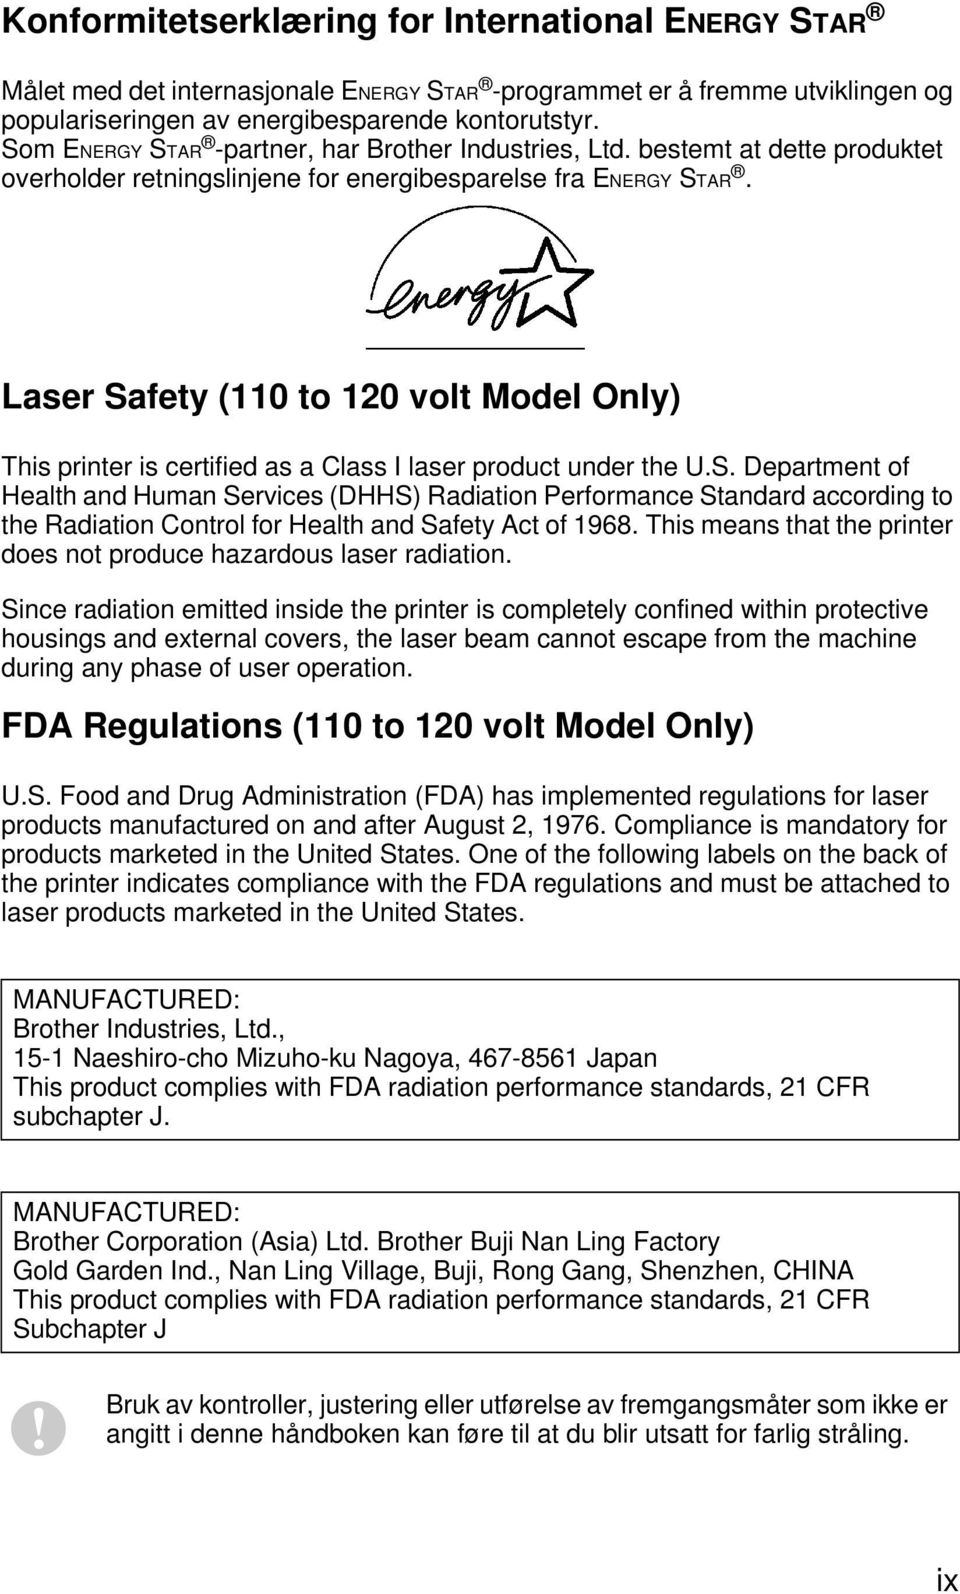 Laser Safety (110 to 120 volt Model Only) This printer is certified as a Class I laser product under the U.S. Department of Health and Human Services (DHHS) Radiation Performance Standard according to the Radiation Control for Health and Safety Act of 1968.